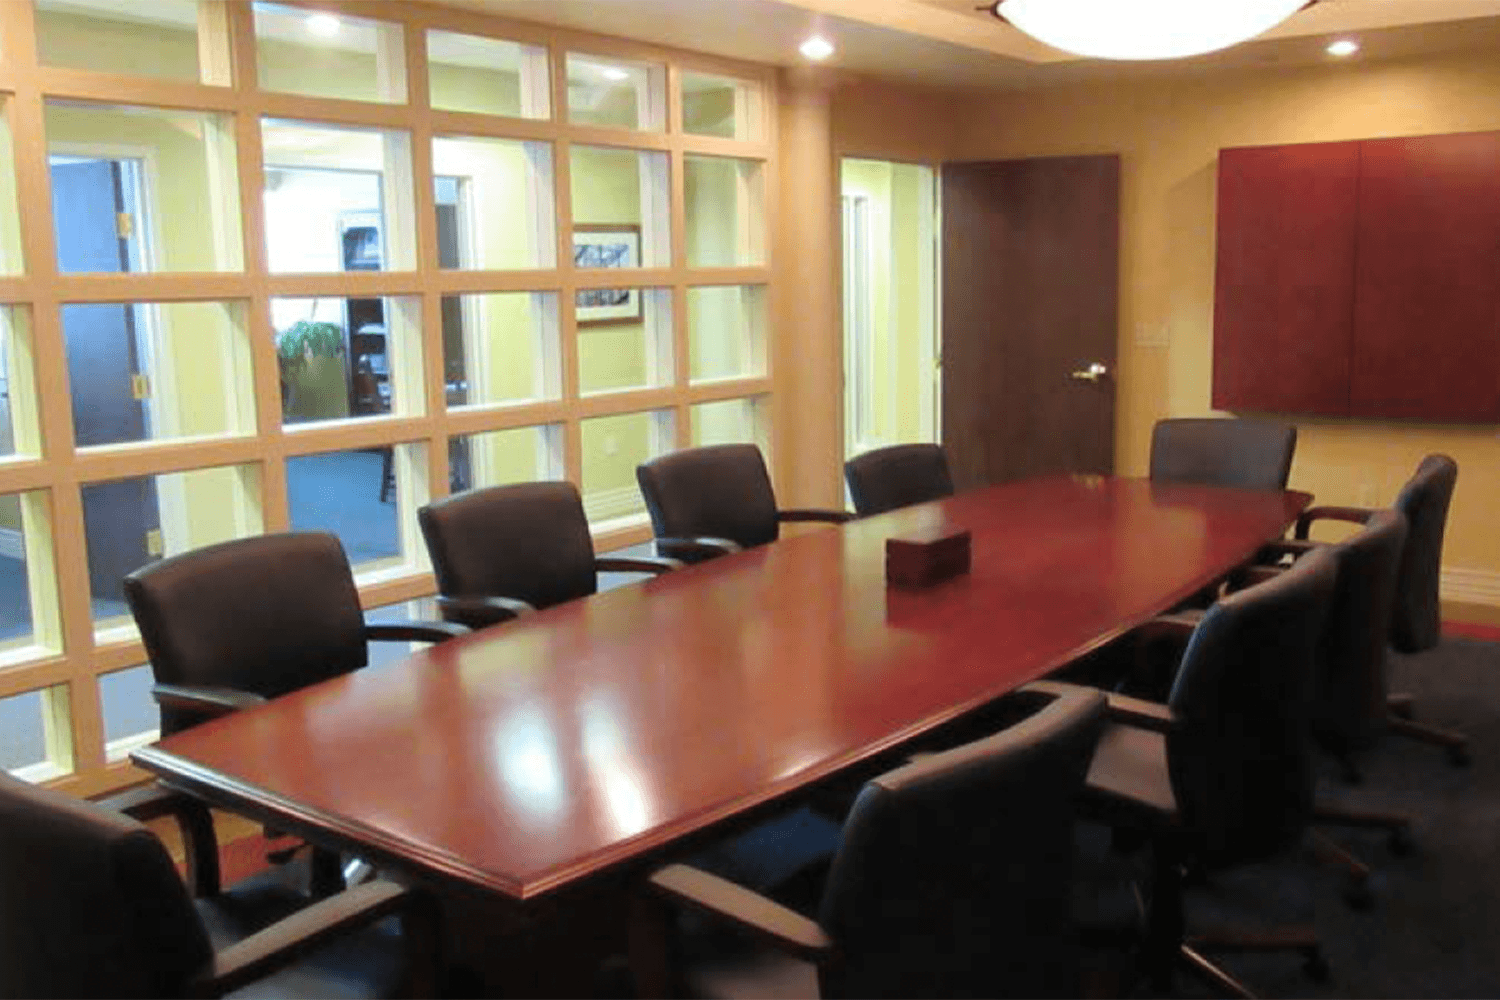 conference room with a large table and chairs and a large window looking into a hallway